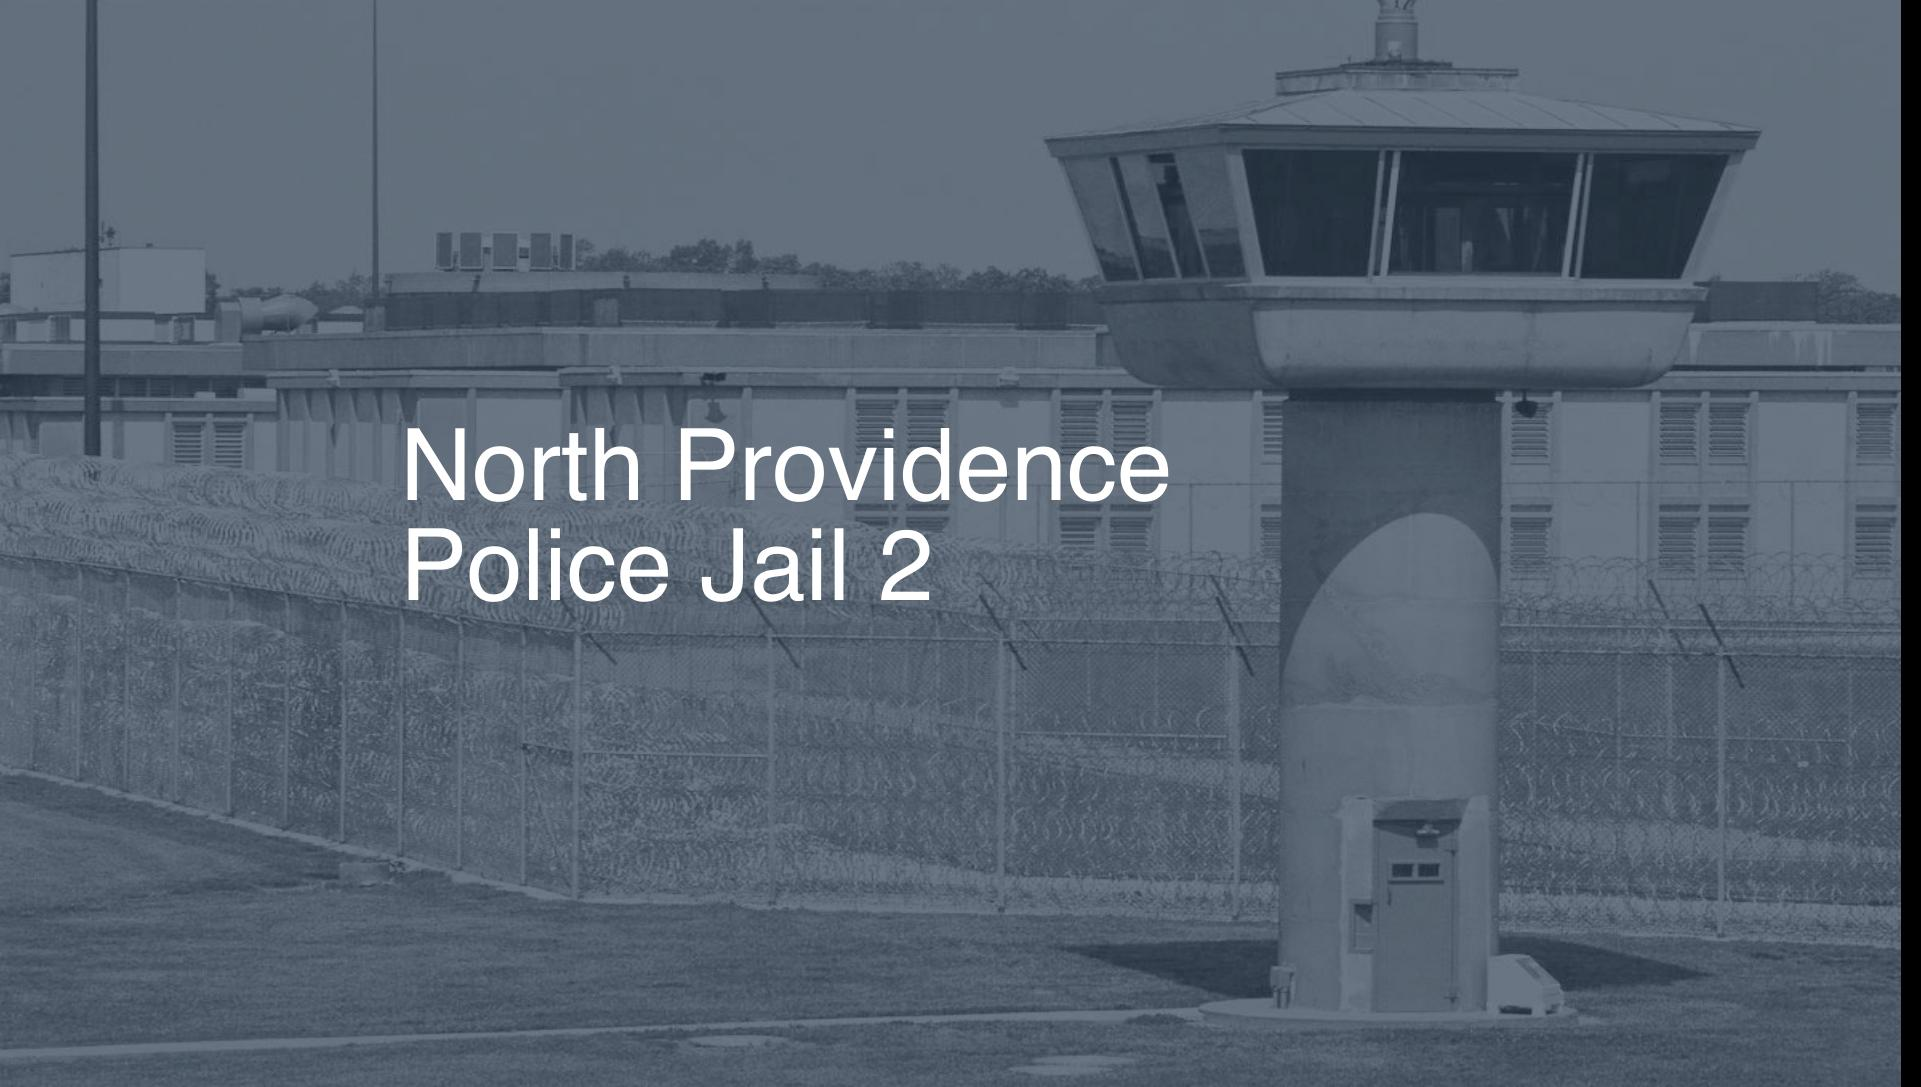 North Providence Police Jail correctional facility picture